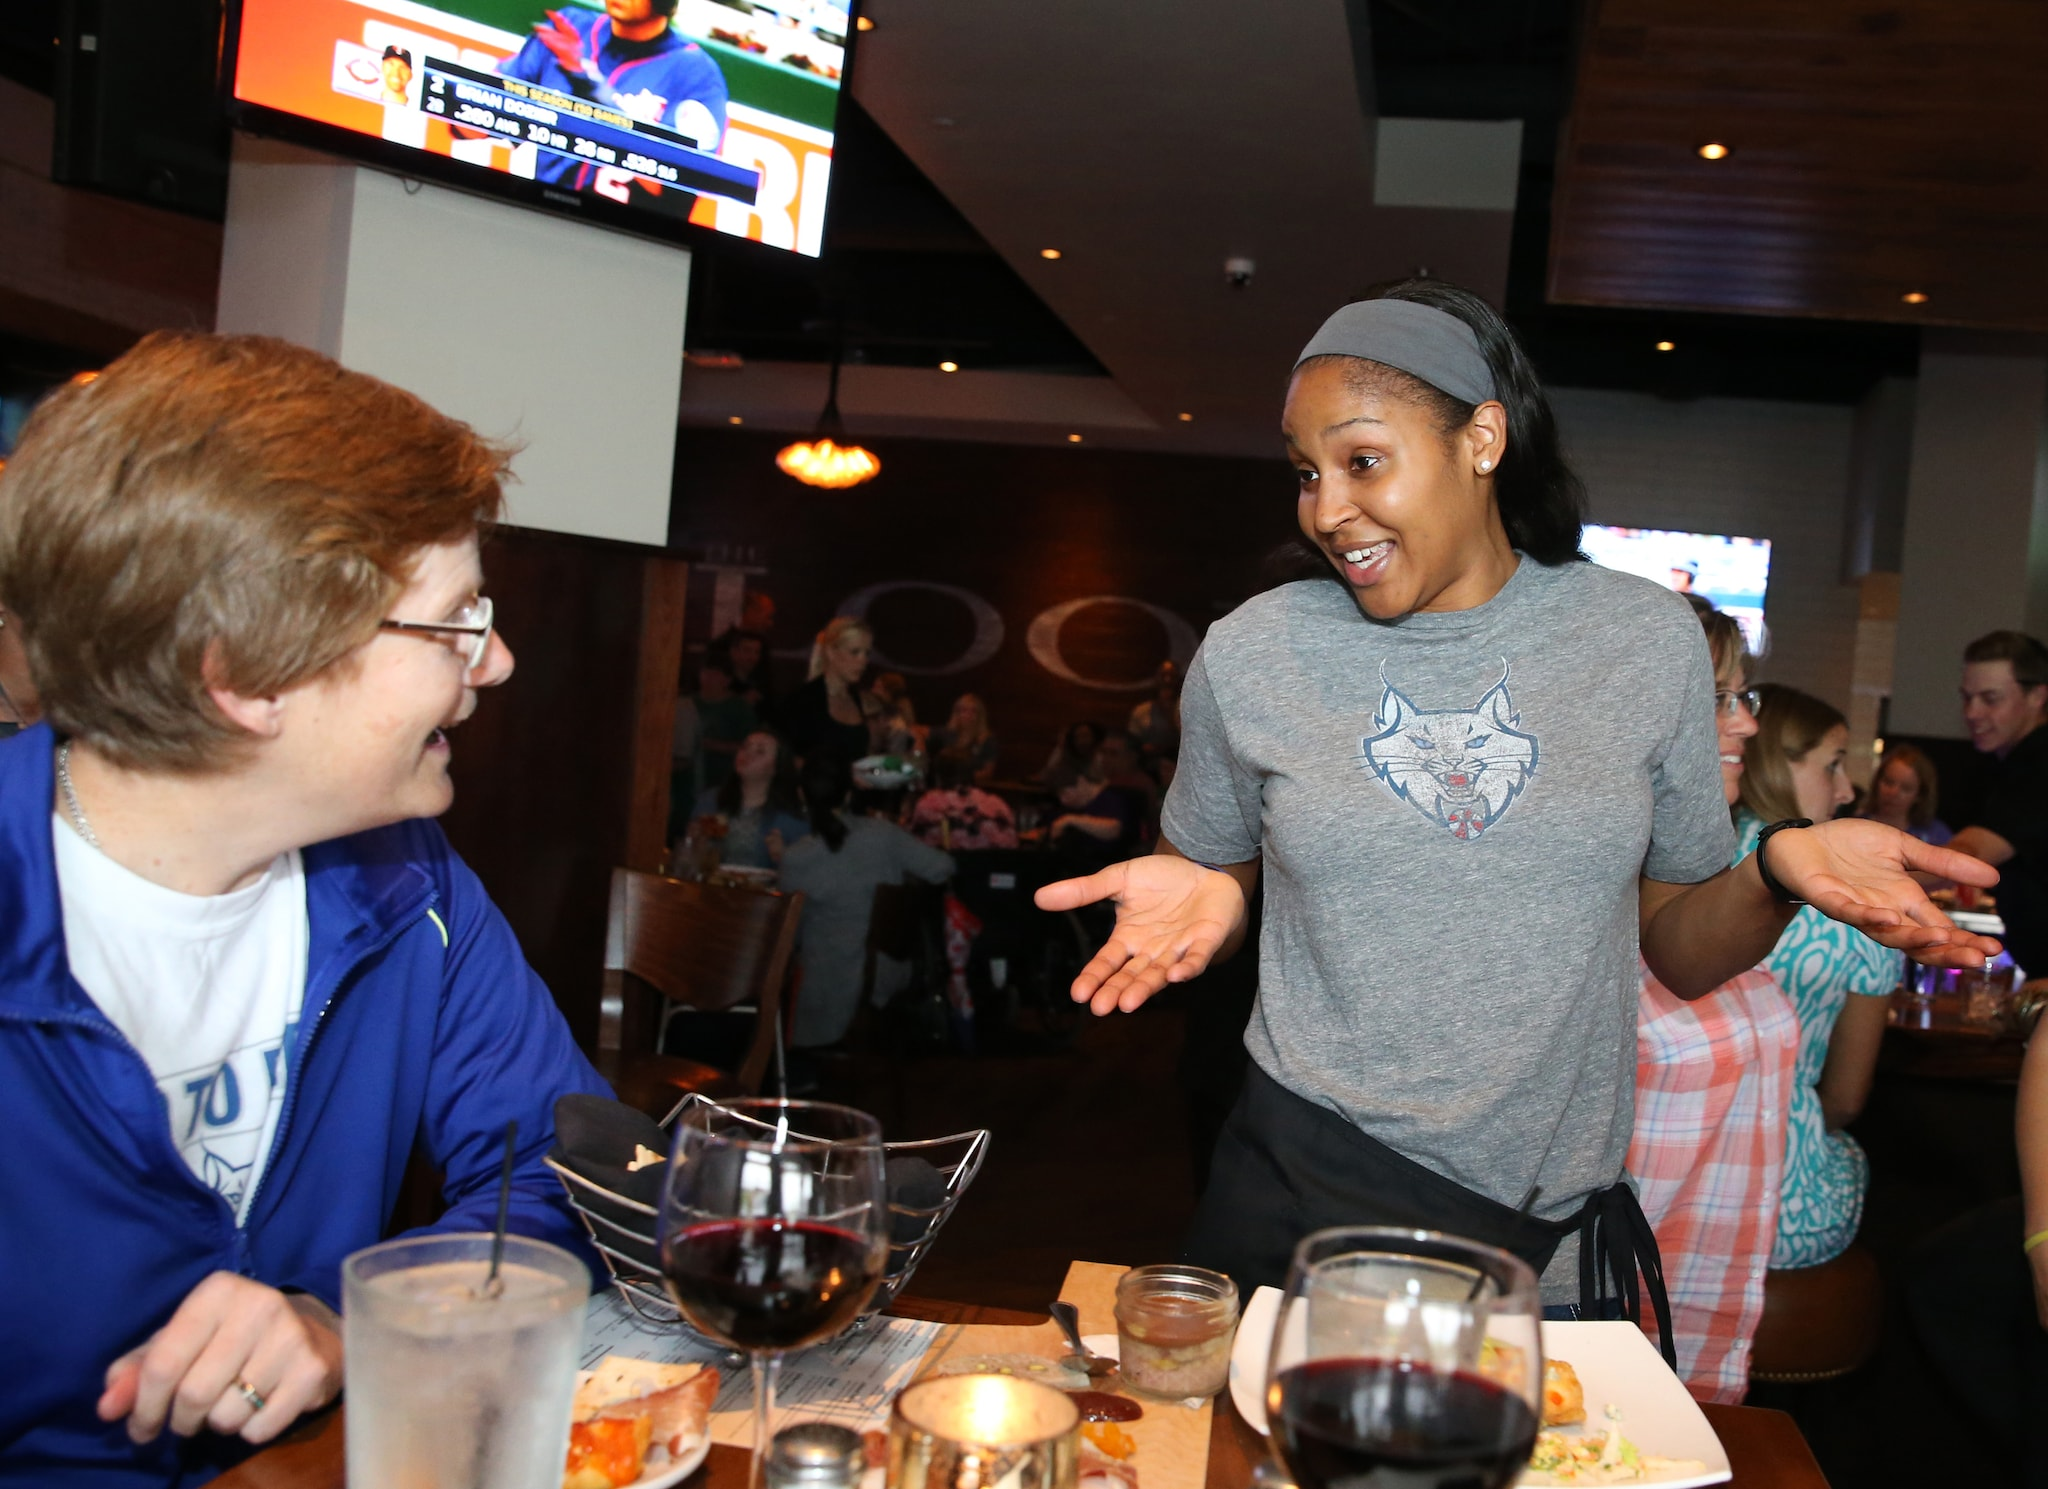 MINNEAPOLIS, MN - JUNE 3:  Maya Moore #23 of the Minnesota Lynx talks with fans during the Tip-A-Lynx fundraiser to benefit the Minnesota Lynx Fastbreak Foundation on June 3, 2015 at the Loop West End Bar & Restaurant in Minneapolis, Minnesota.  NOTE TO USER: User expressly acknowledges and agrees that, by downloading and or using this Photograph, user is consenting to the terms and conditions of the Getty Images License Agreement. Mandatory Copyright Notice: Copyright 2015 NBAE (Photo by David Sherman/NBAE via Getty Images)